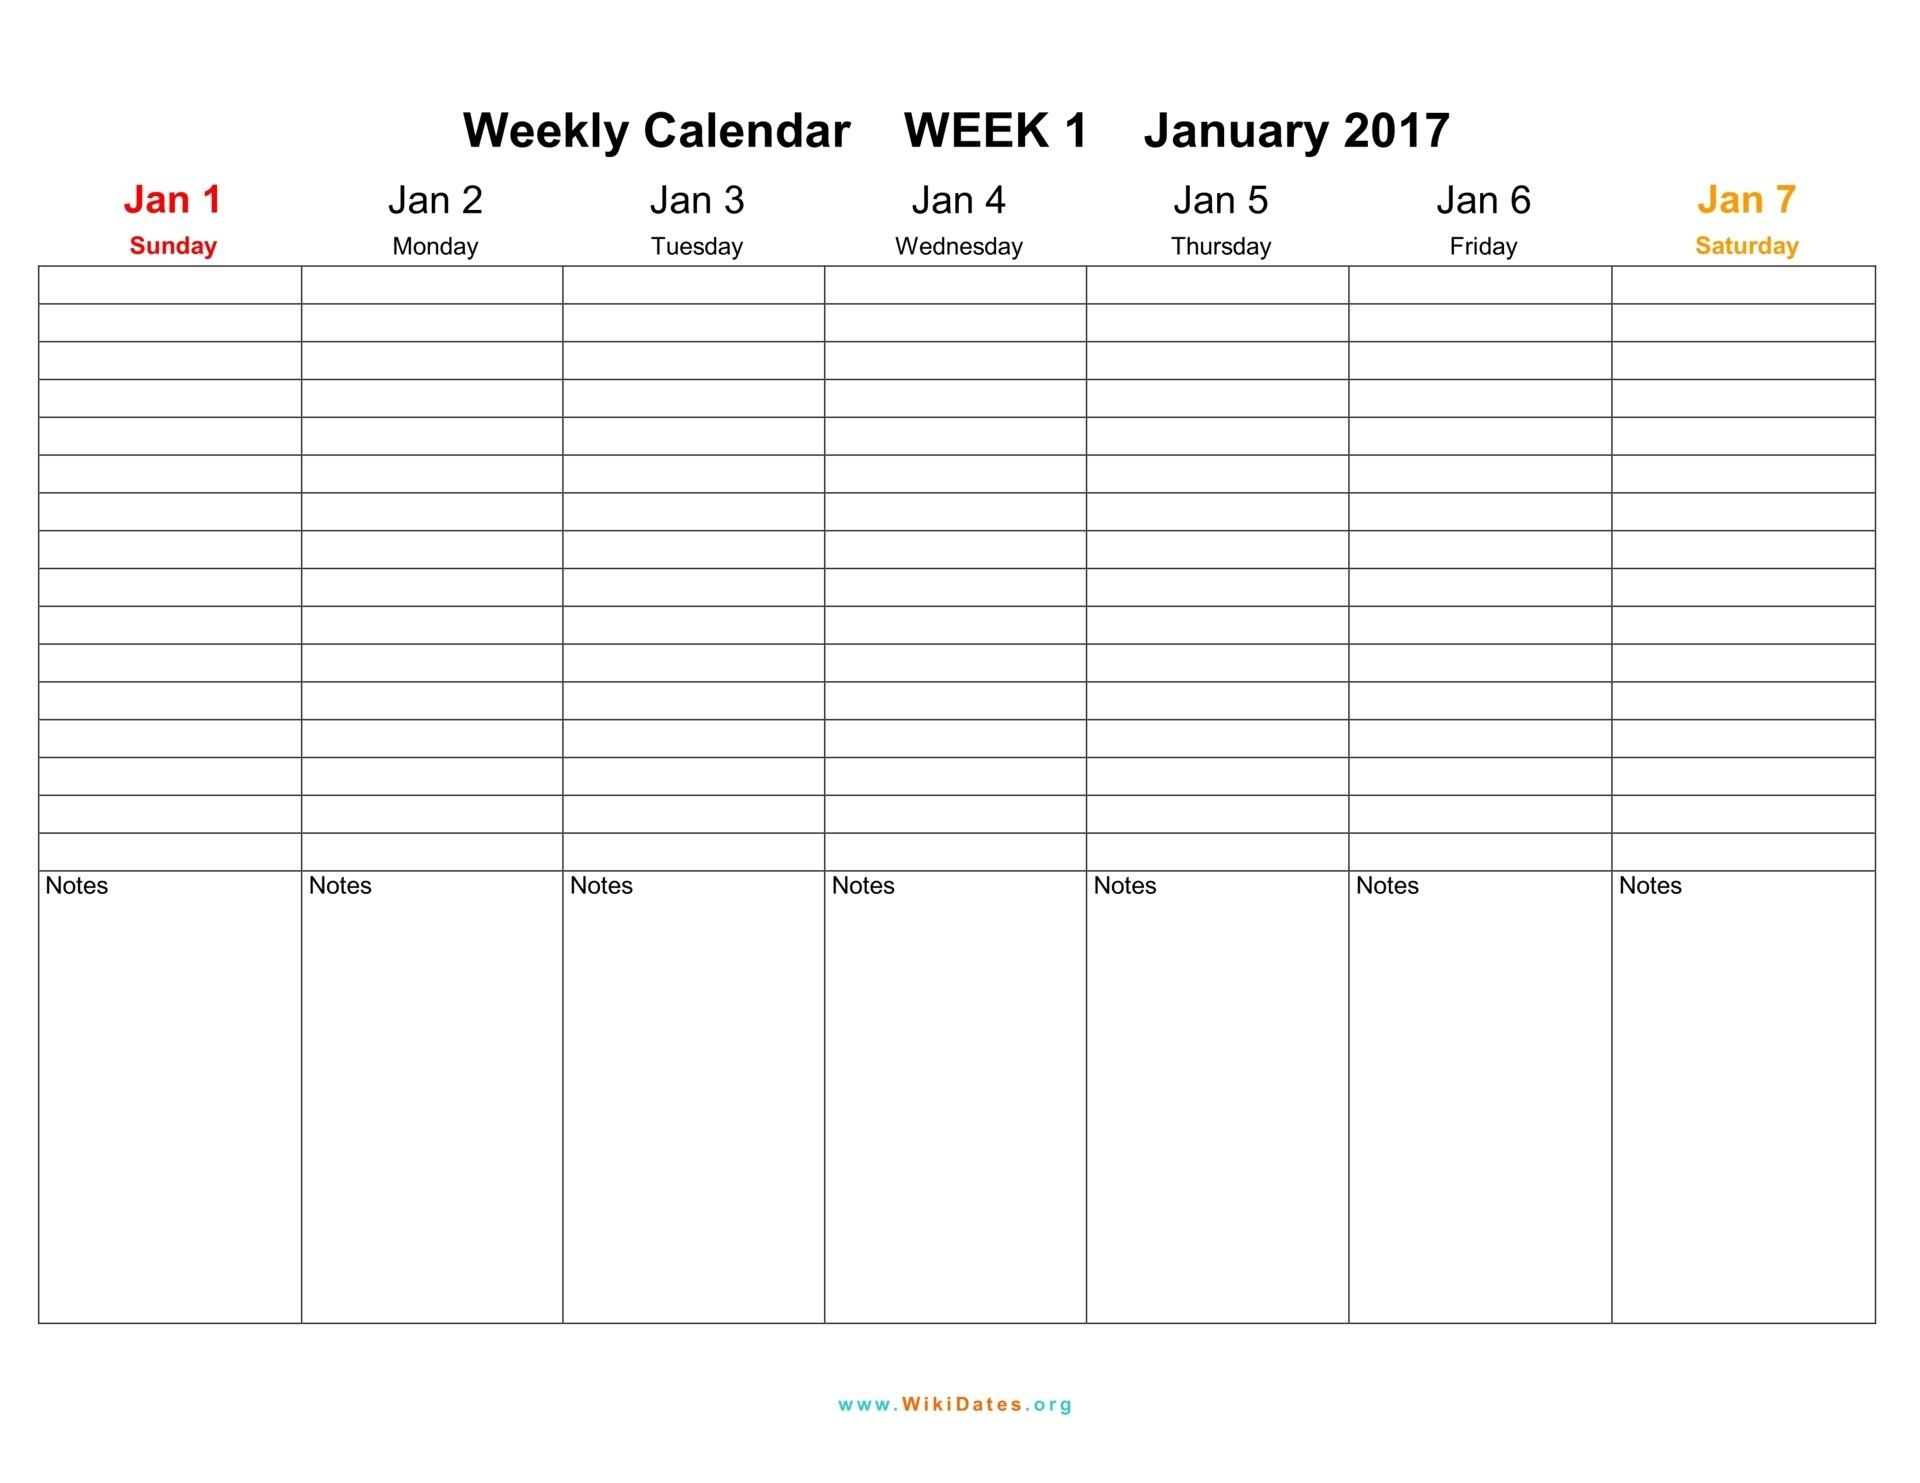 Weekly Calendar - Download Weekly Calendar 2017 And 2018 4 Week Calendar Printable